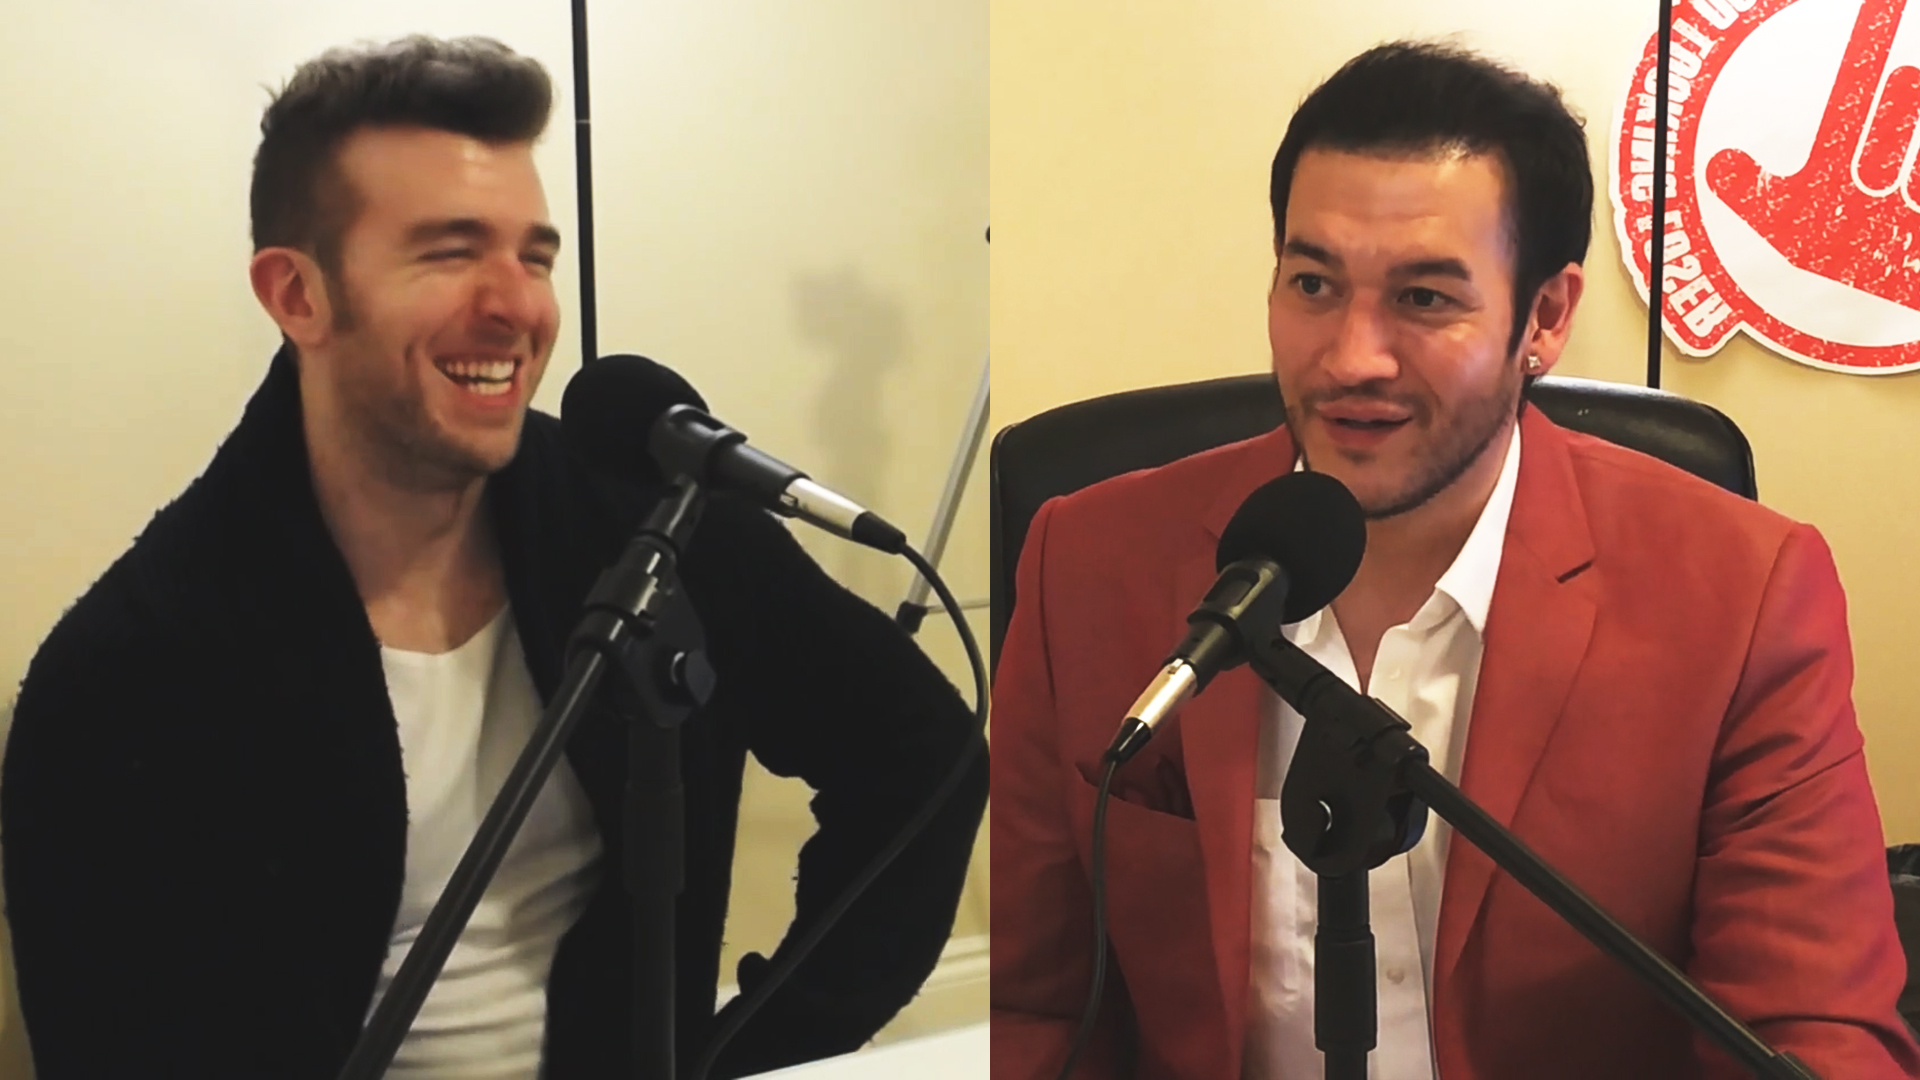 Derek from MorePlatesMoreDates.com and Chris Deoudes from Good Looking Loser talking on MPMD podcast episode #4